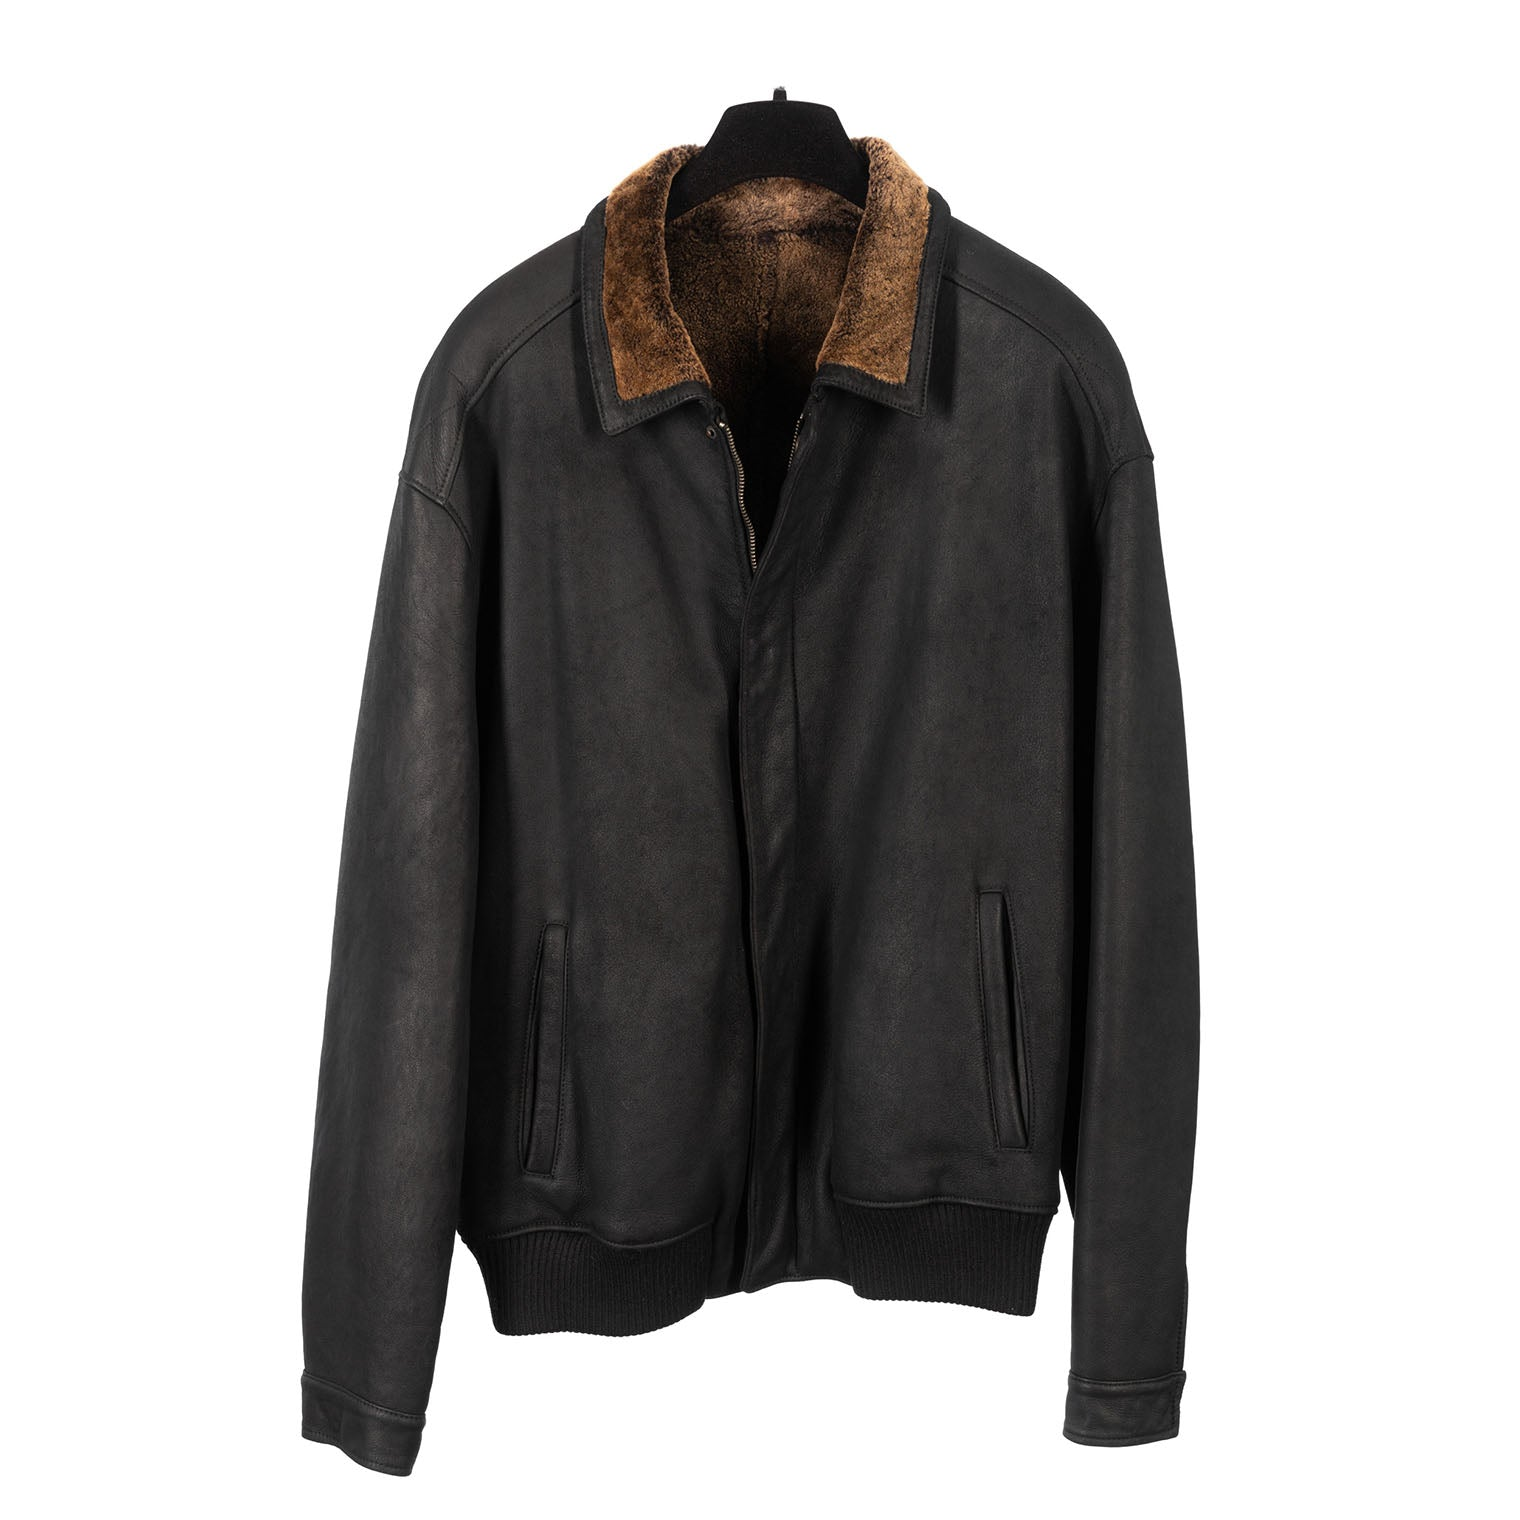 Men's Black Shearling Bomber Jacket